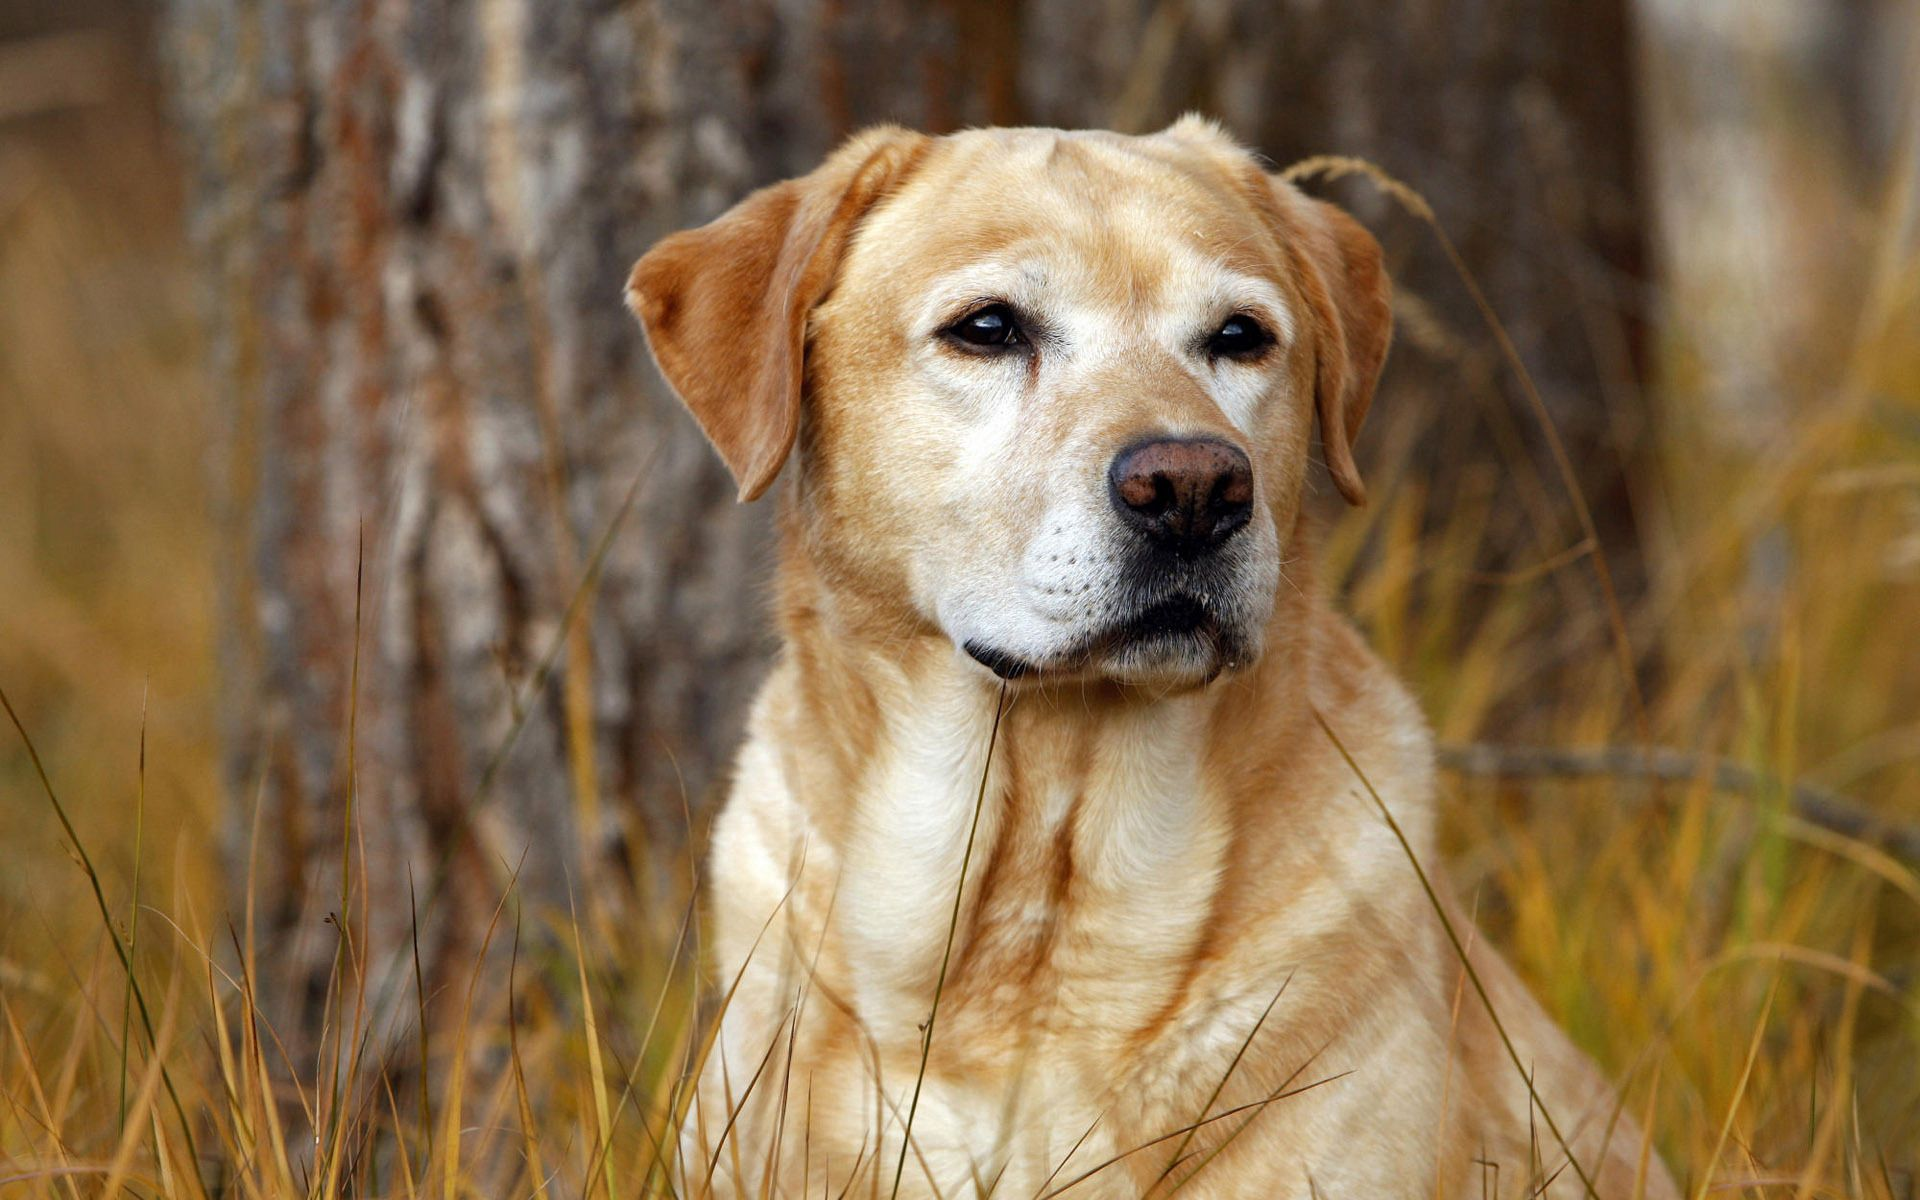 96638 download wallpaper Animals, Labrador, Dog, Nose, Grass screensavers and pictures for free